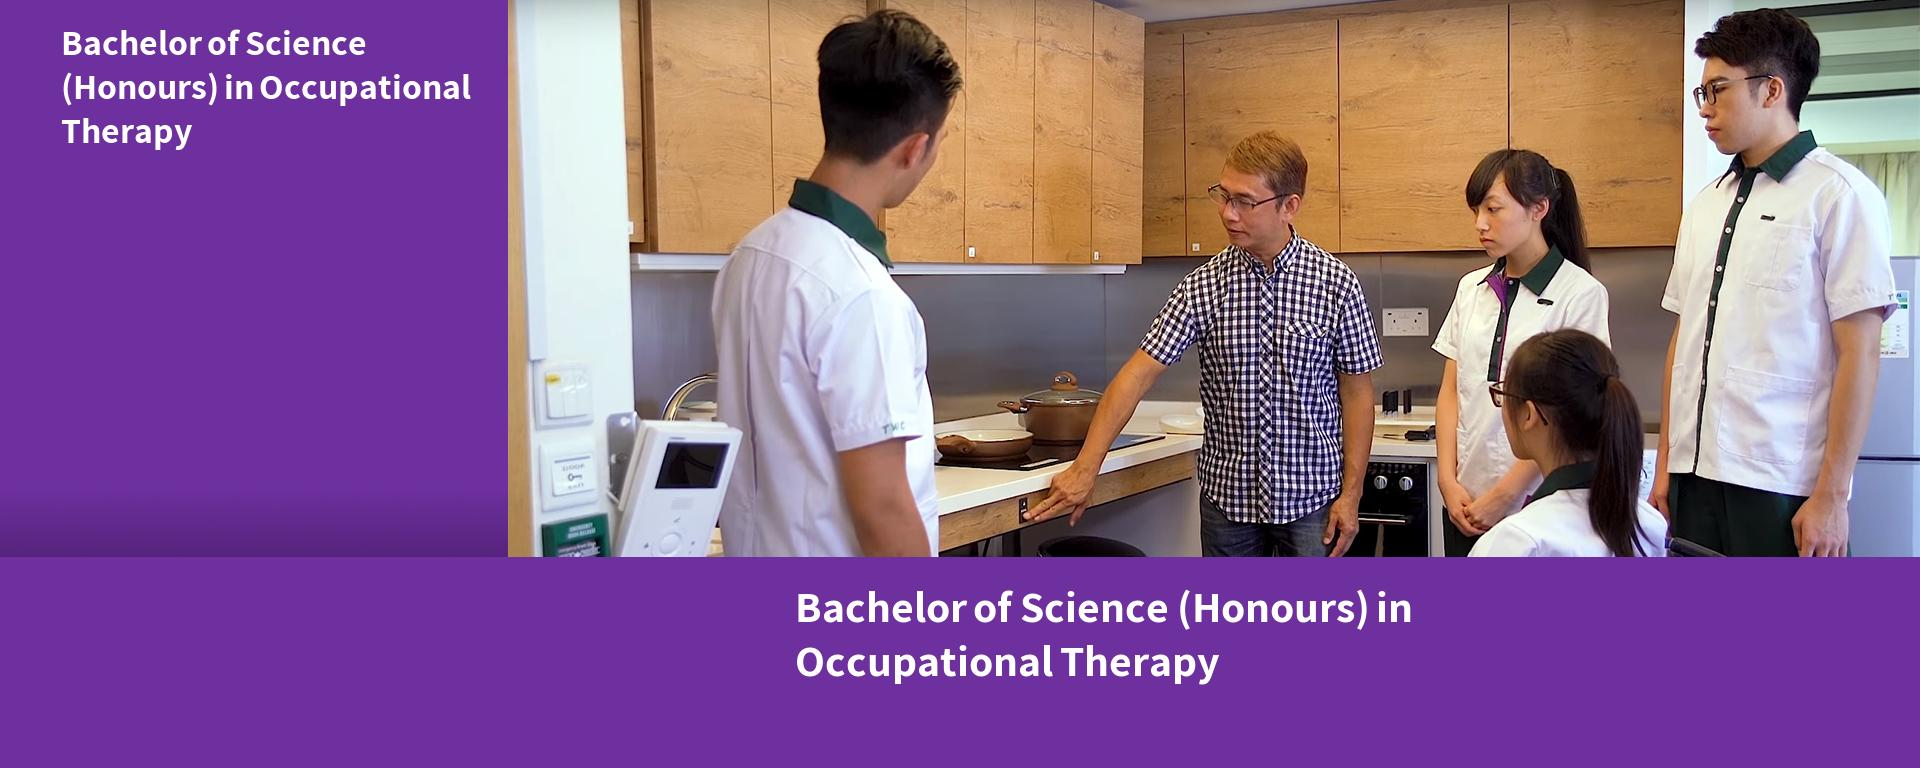 Bachelor of Science (Honours) in Occupational Therapy